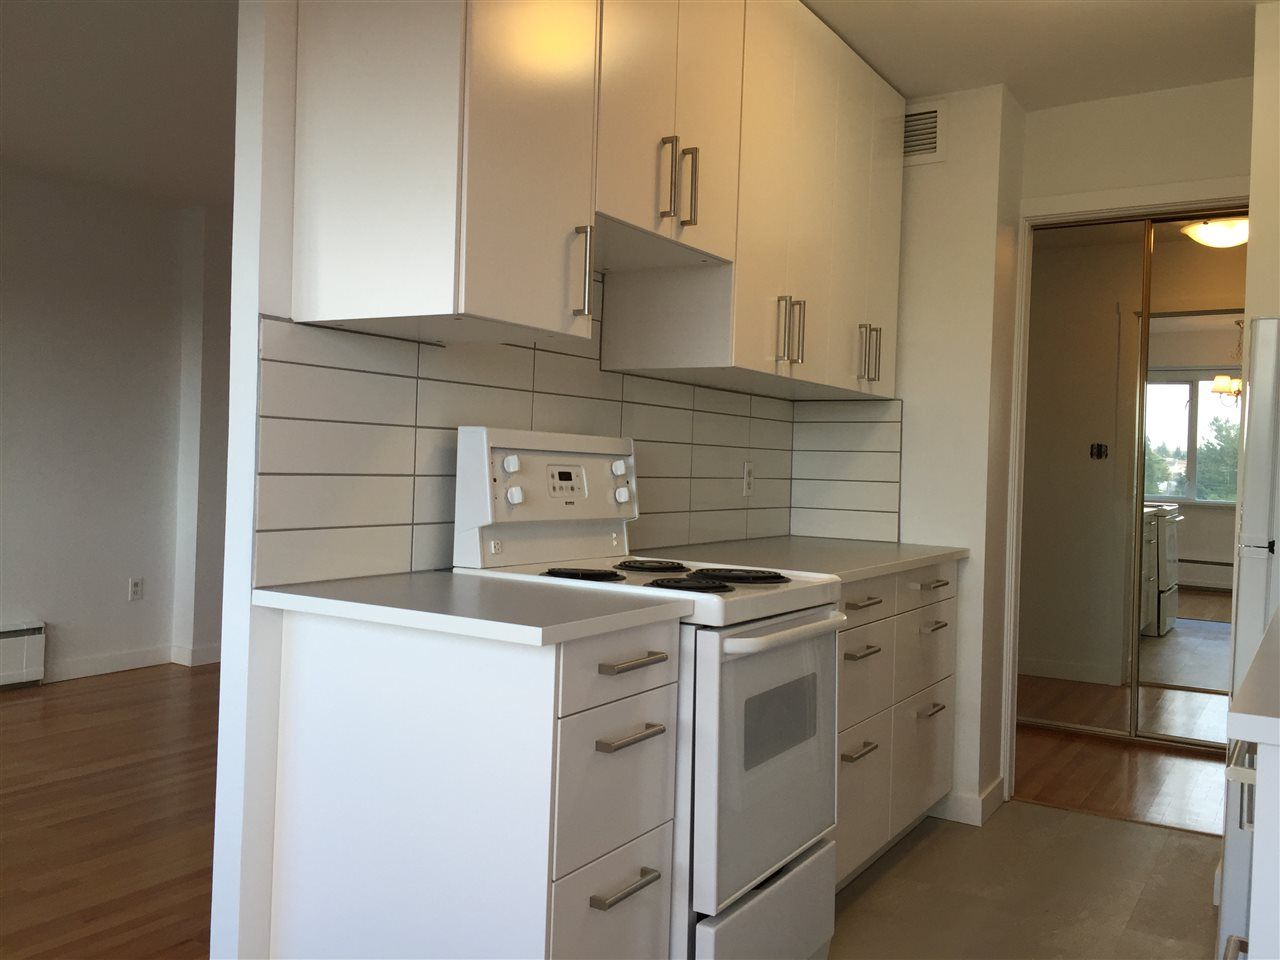 "Photo 4: Photos: 504 6026 TISDALL ST in Vancouver: Oakridge VW Condo for sale in ""Oakridge Towers"" (Vancouver West)  : MLS®# R2021576"